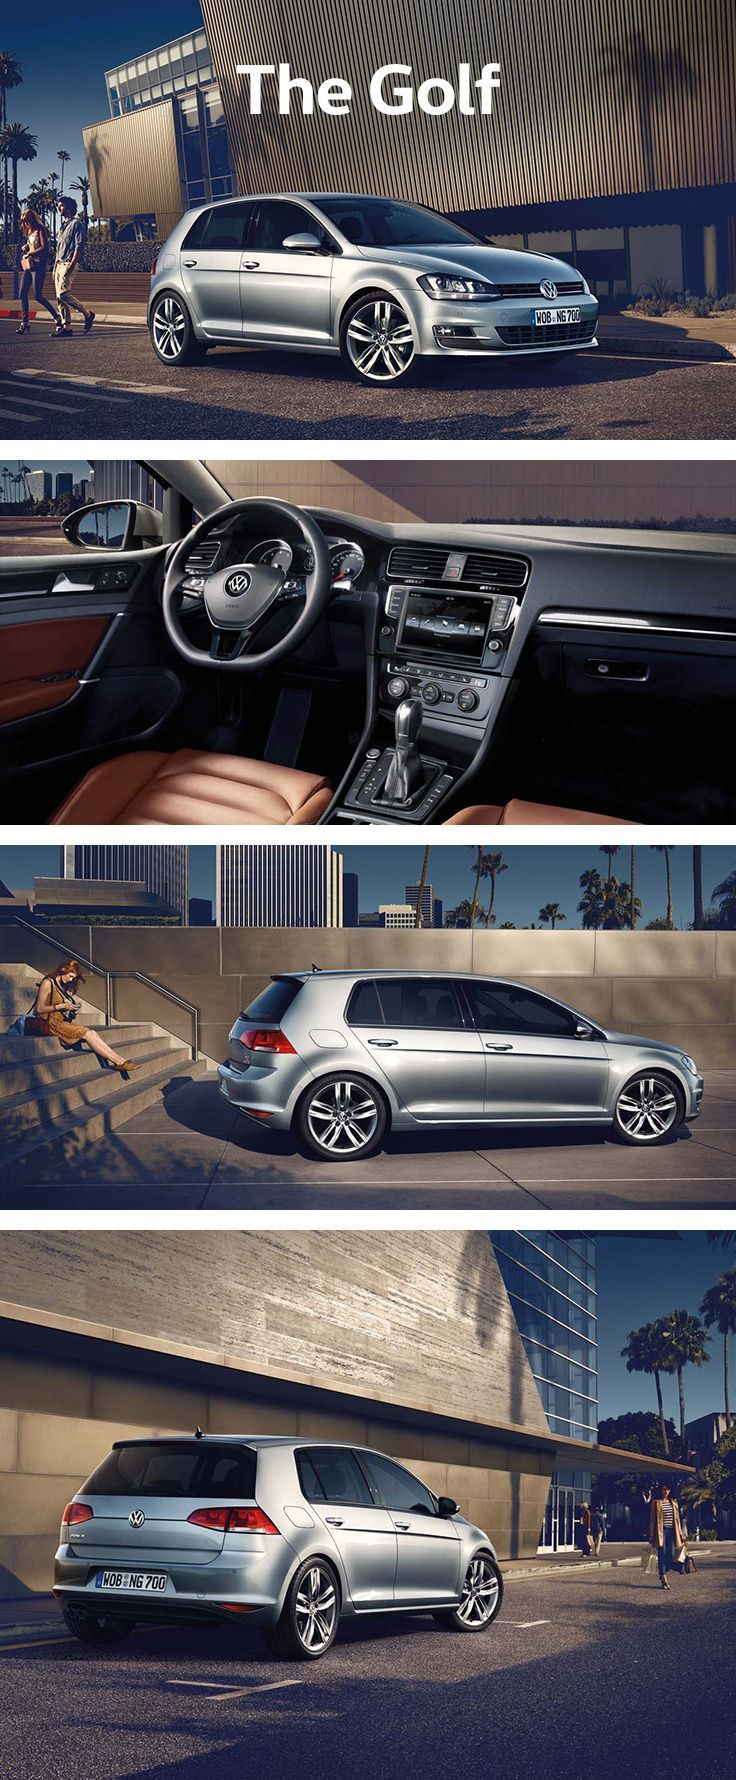 Best Dubai Luxury And Sports Cars In Dubai: For easy everyday use the Volkswagen Golf is a compact car with an especially l